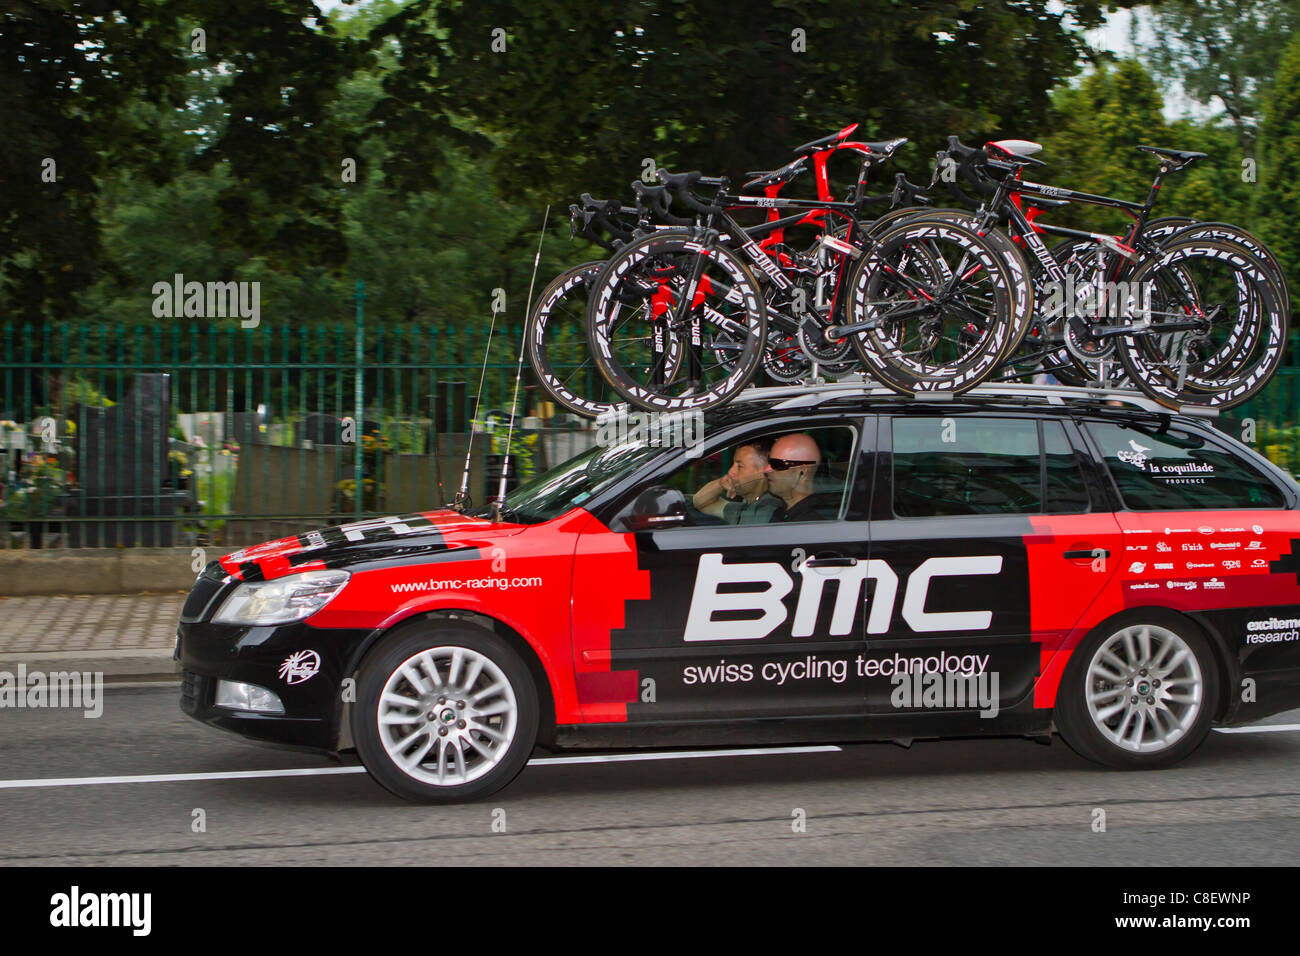 Bike Racing Team Car With Spare Bicycles On The Roof Rack Tour